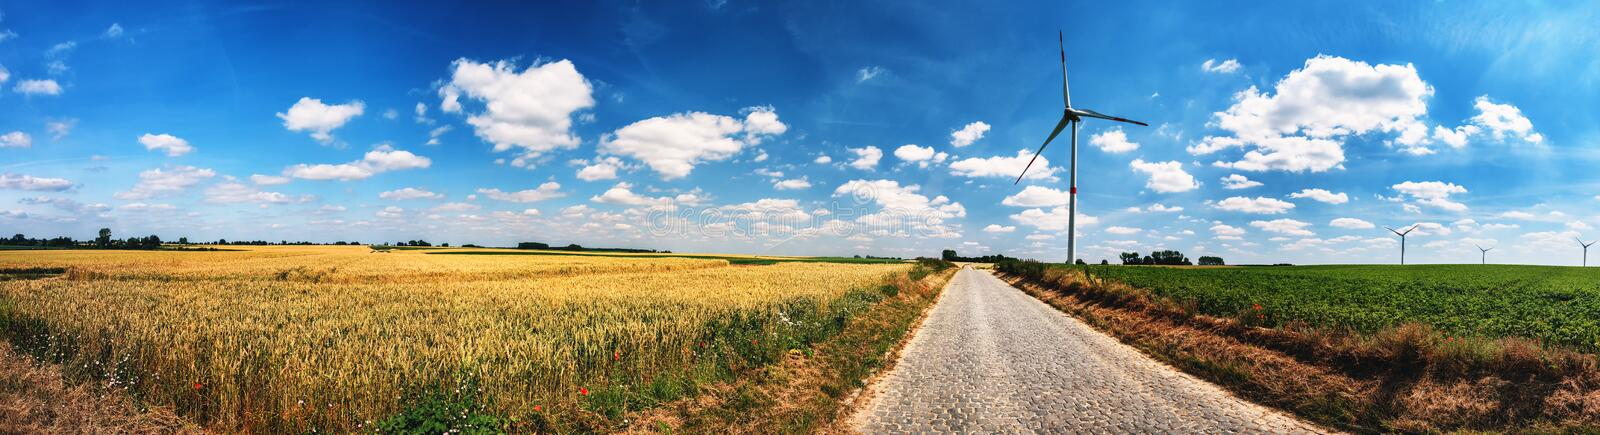 Panoramic summer landscape with country road and wind turbines stock images